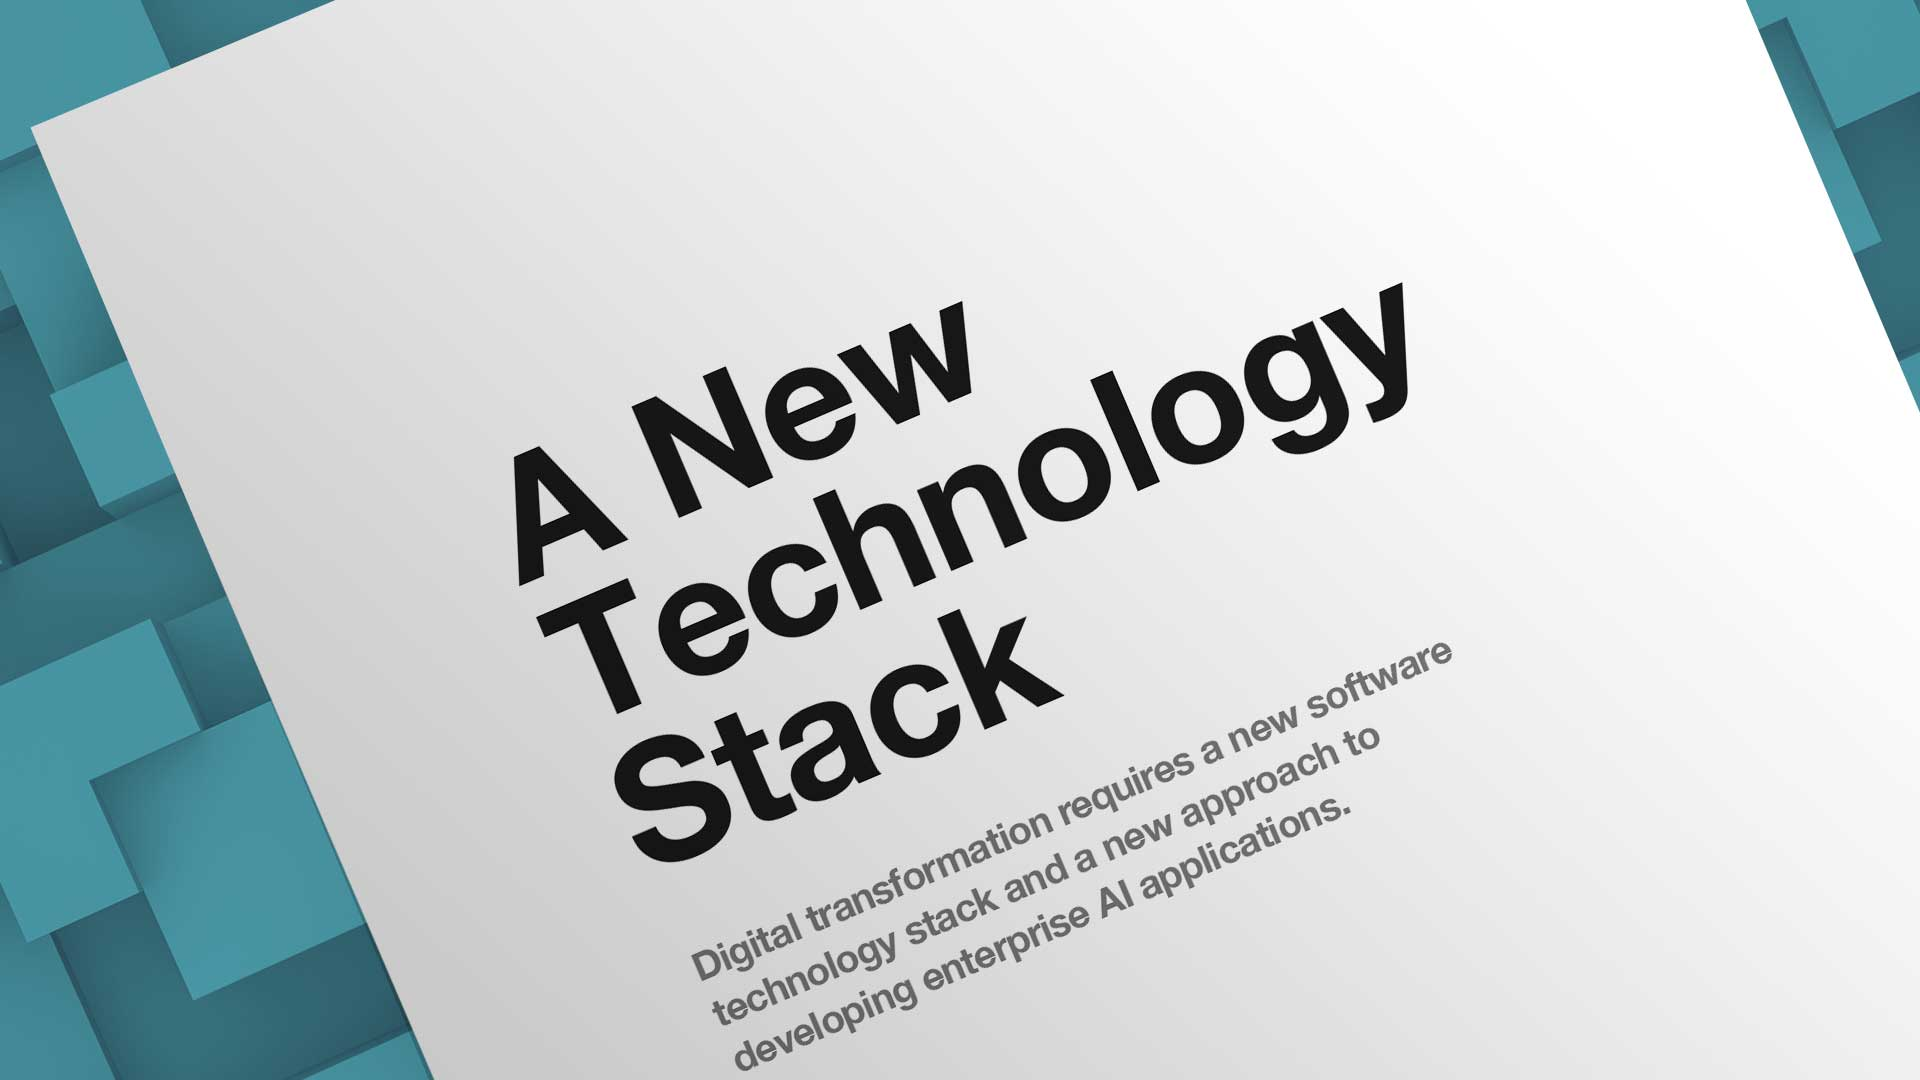 A New Technology Stack